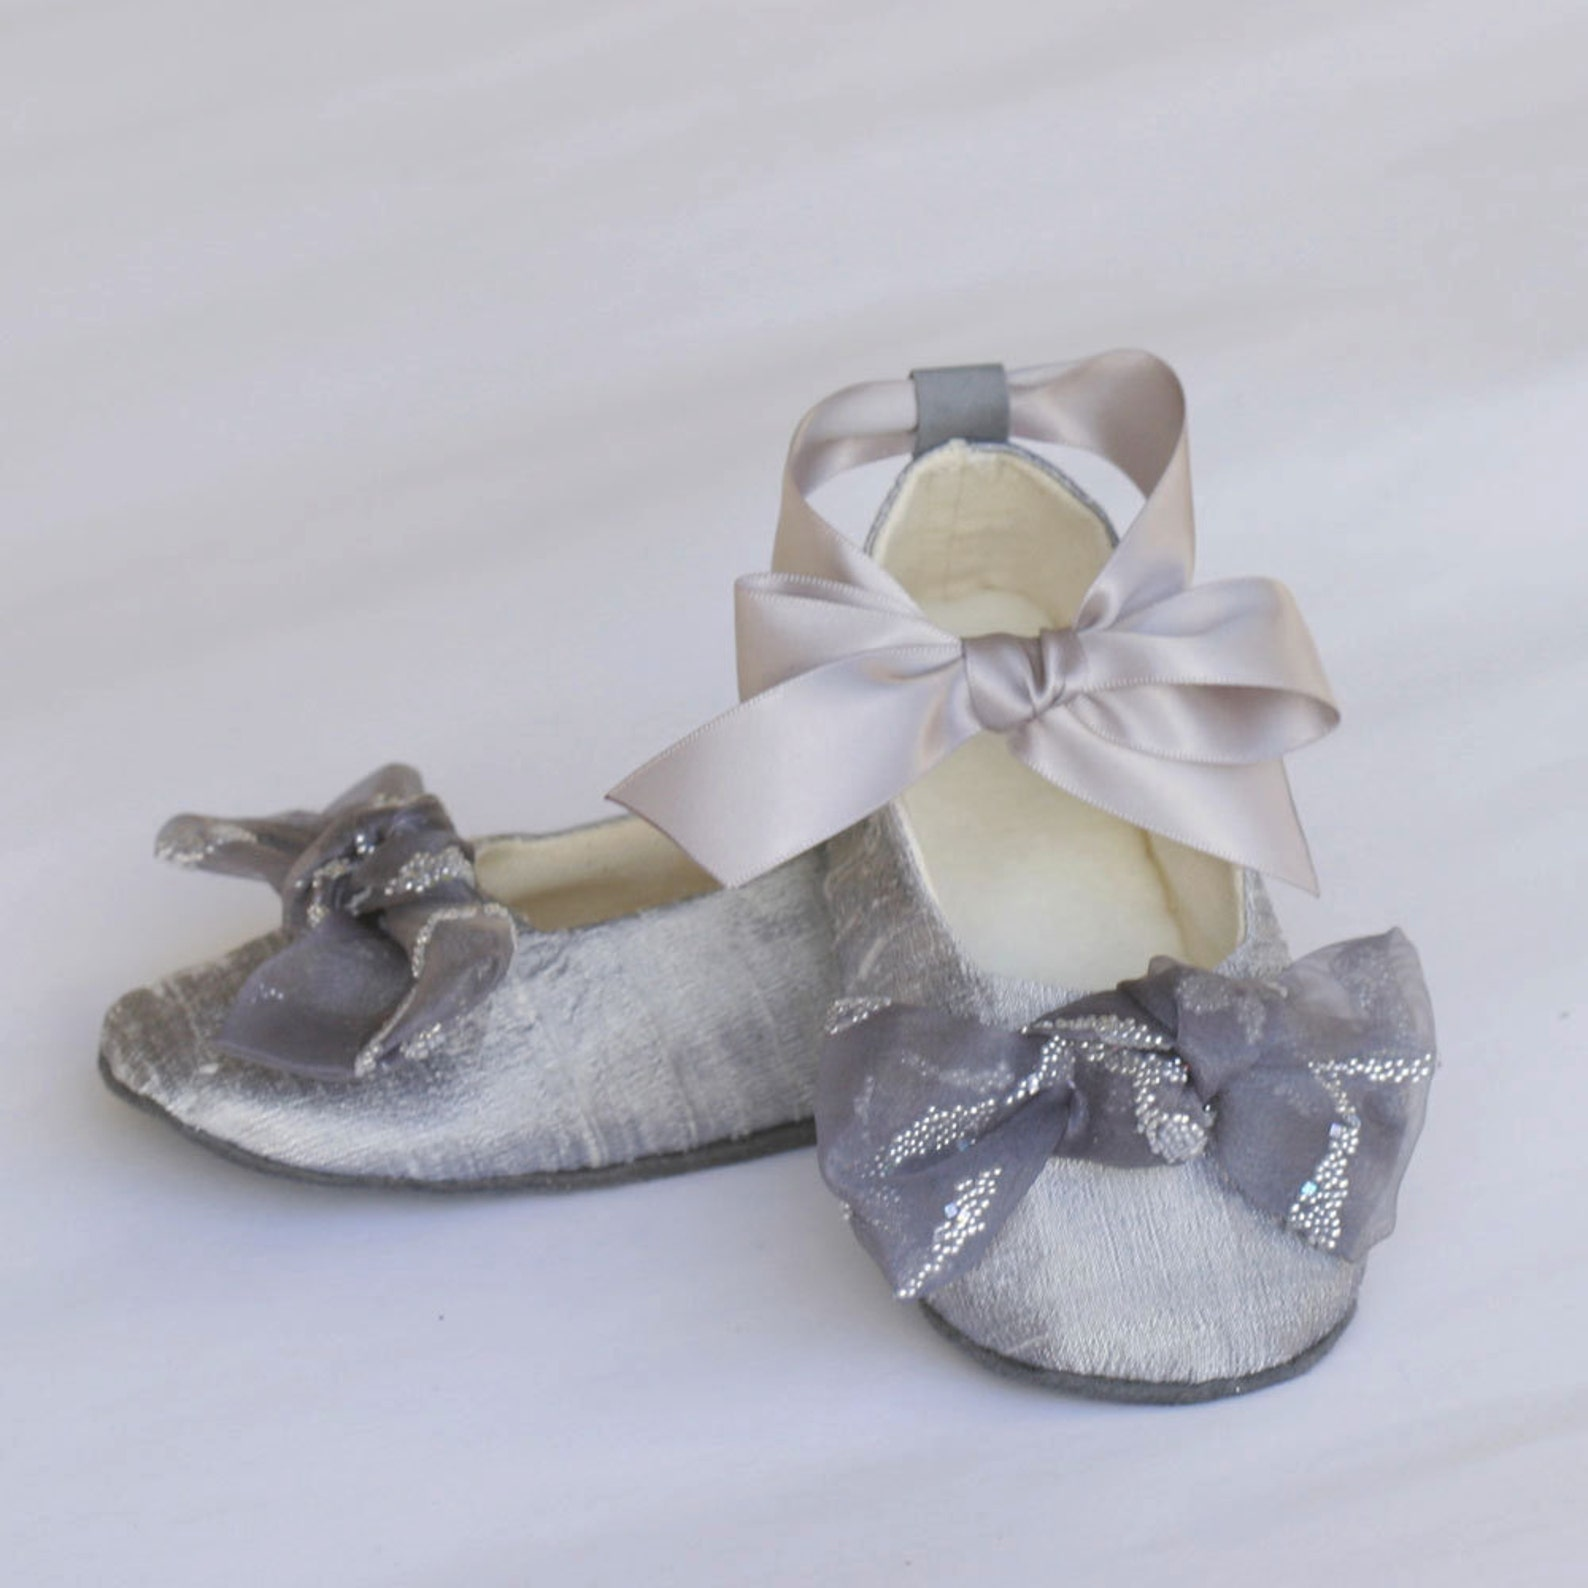 silver silk flower girl shoe, platinum toddler ballet slipper, silk baby shoe, ballet flat, little girls wedding shoe, bootie, b